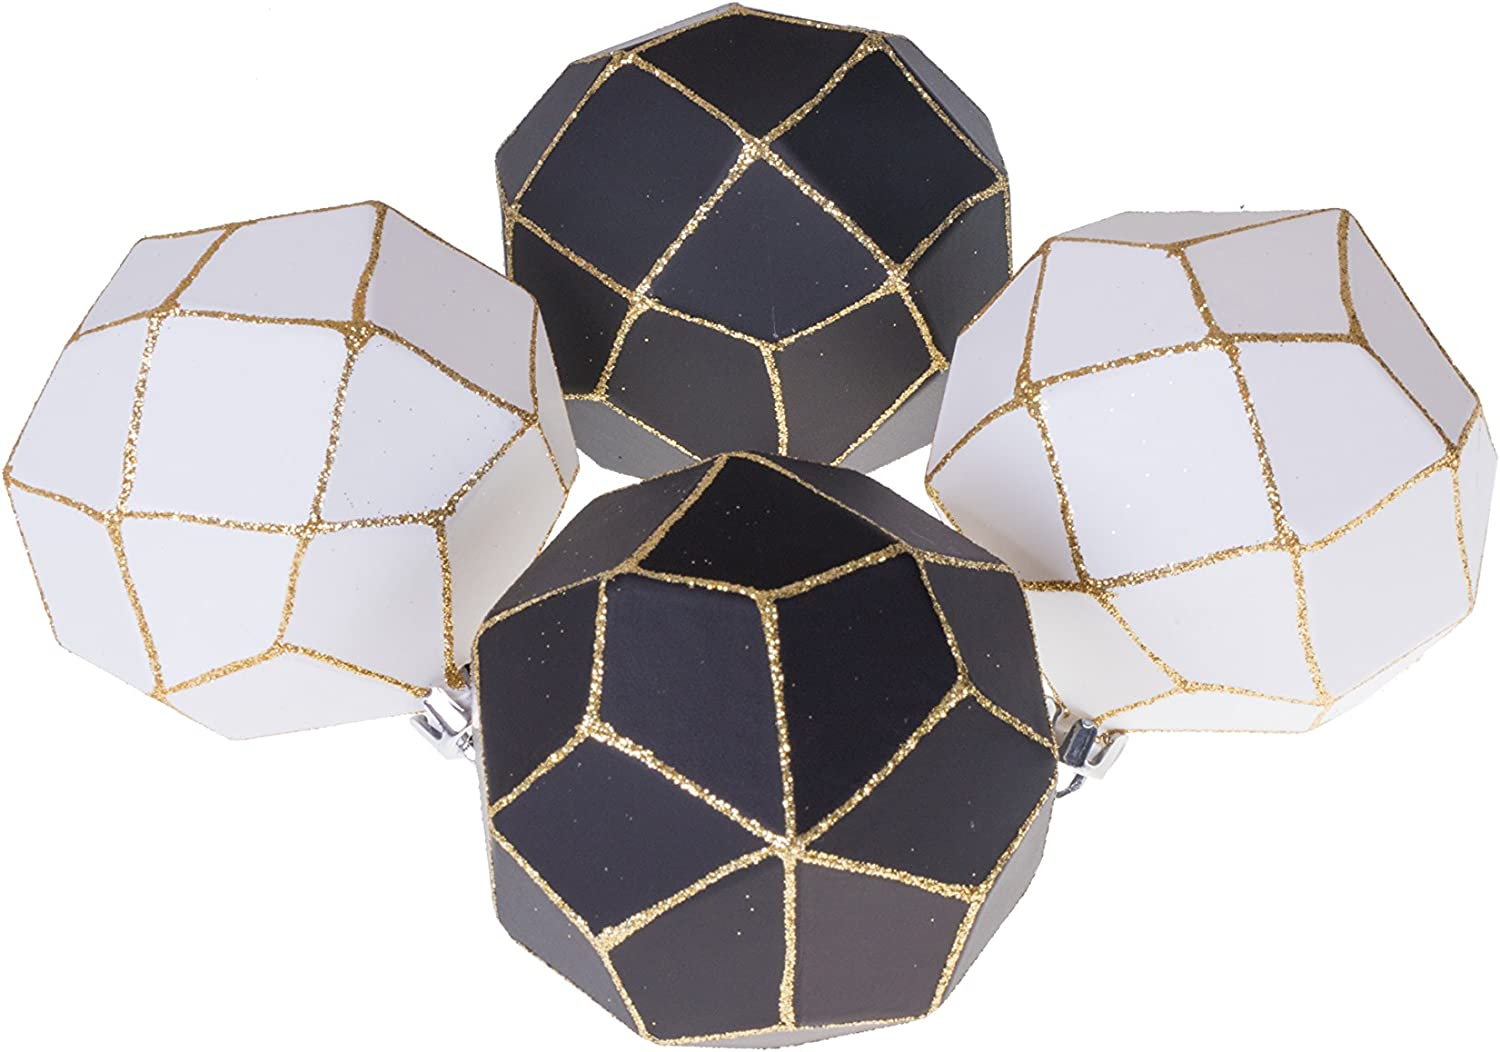 Clever Creations Christmas Ornament Ball Set Black and White with Gold Glitter | 4 Pack | Festive Holiday Décor | Geometric Sphere| Classic Design | Shatter Resistant | Hangers Included | 75mm